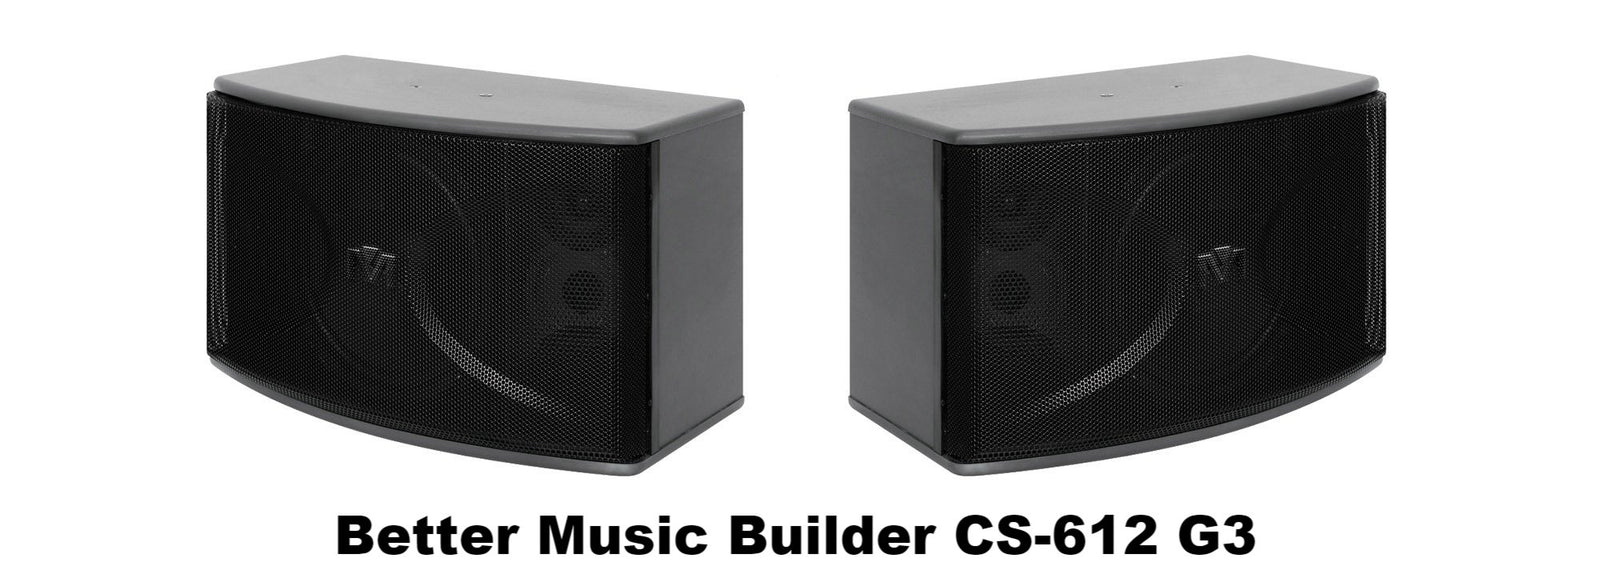 The Pro Elite #4: Combination of PMA320 III, CS-612 G3, BLX288/PG58, and HD-888 (5TB)